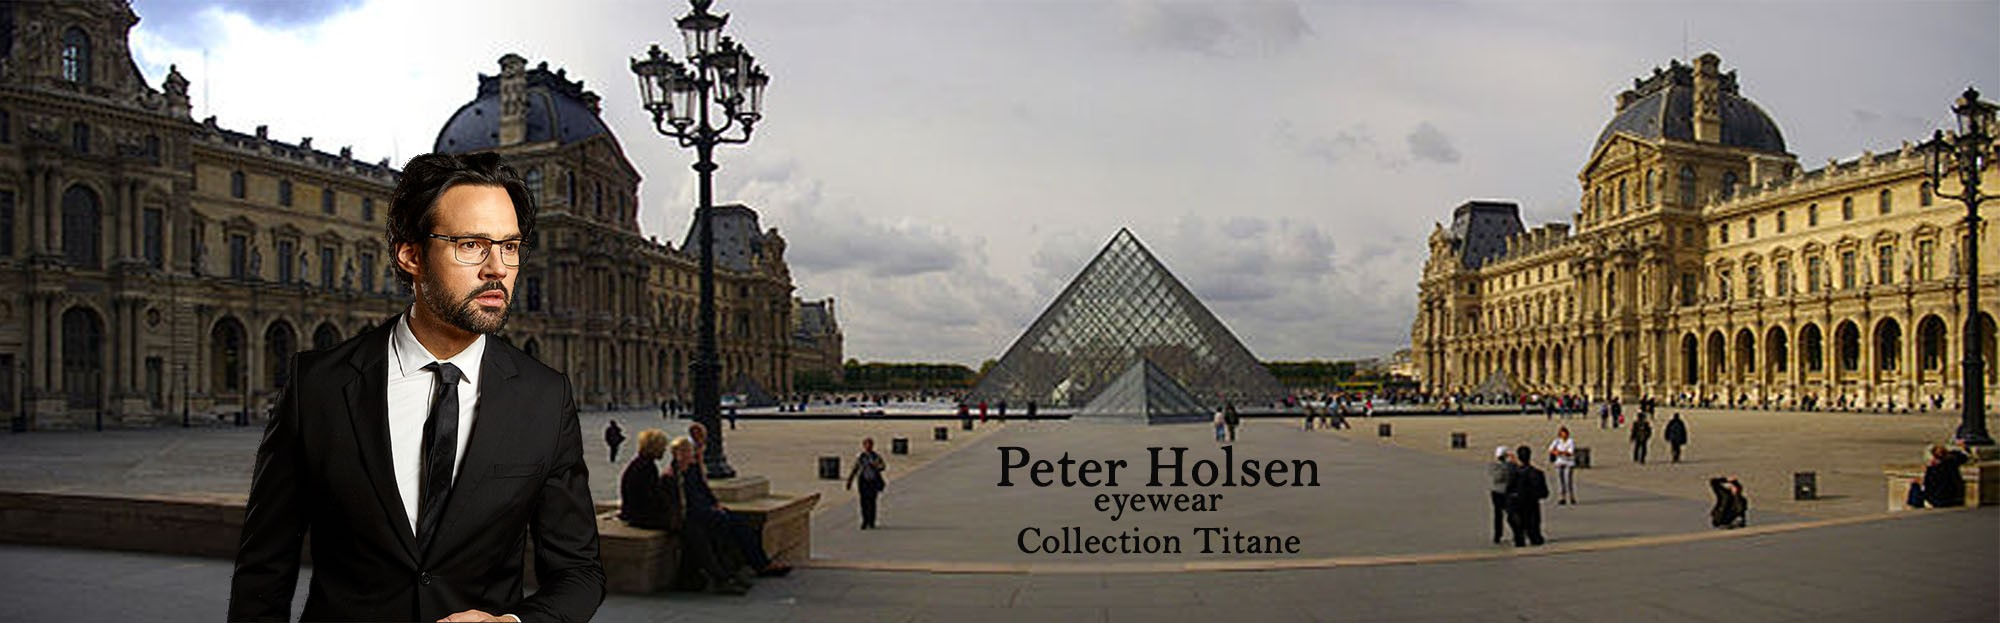 Peter Holsen